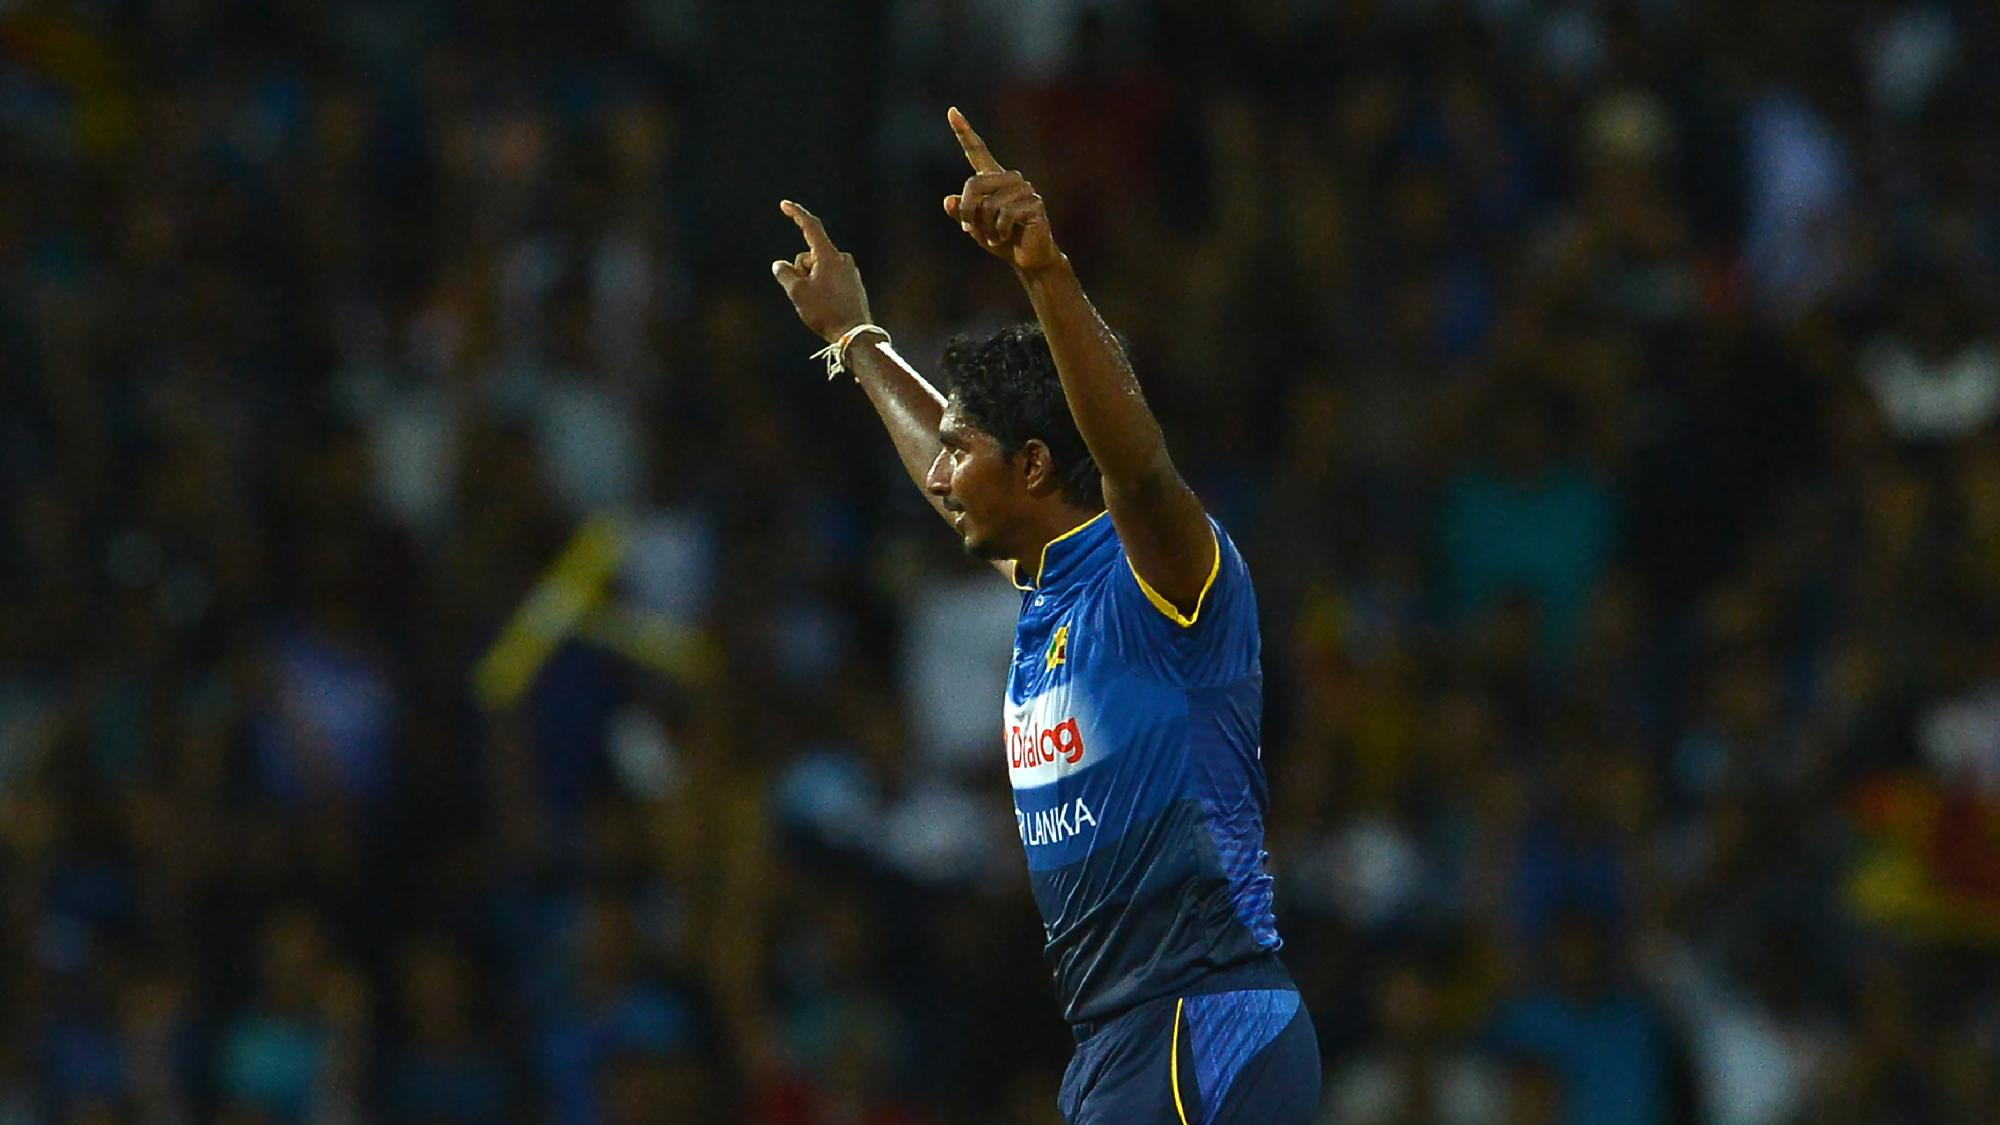 Sri Lankan spin masterclass dupes South Africa in solitary T20I